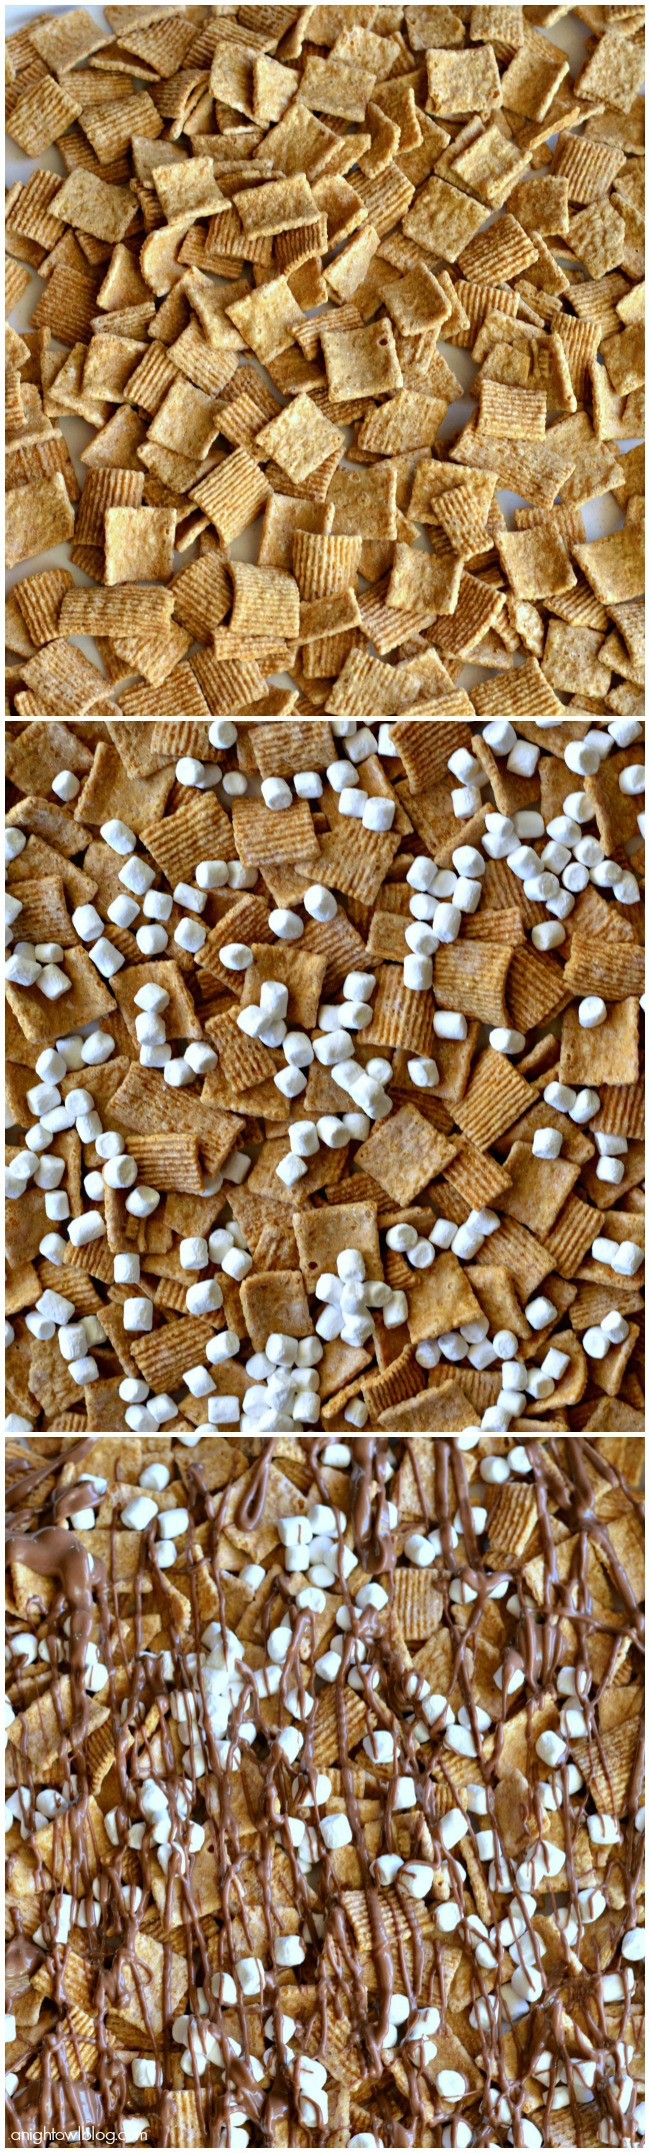 Make this S'mores Snack Mix in just a few easy steps!